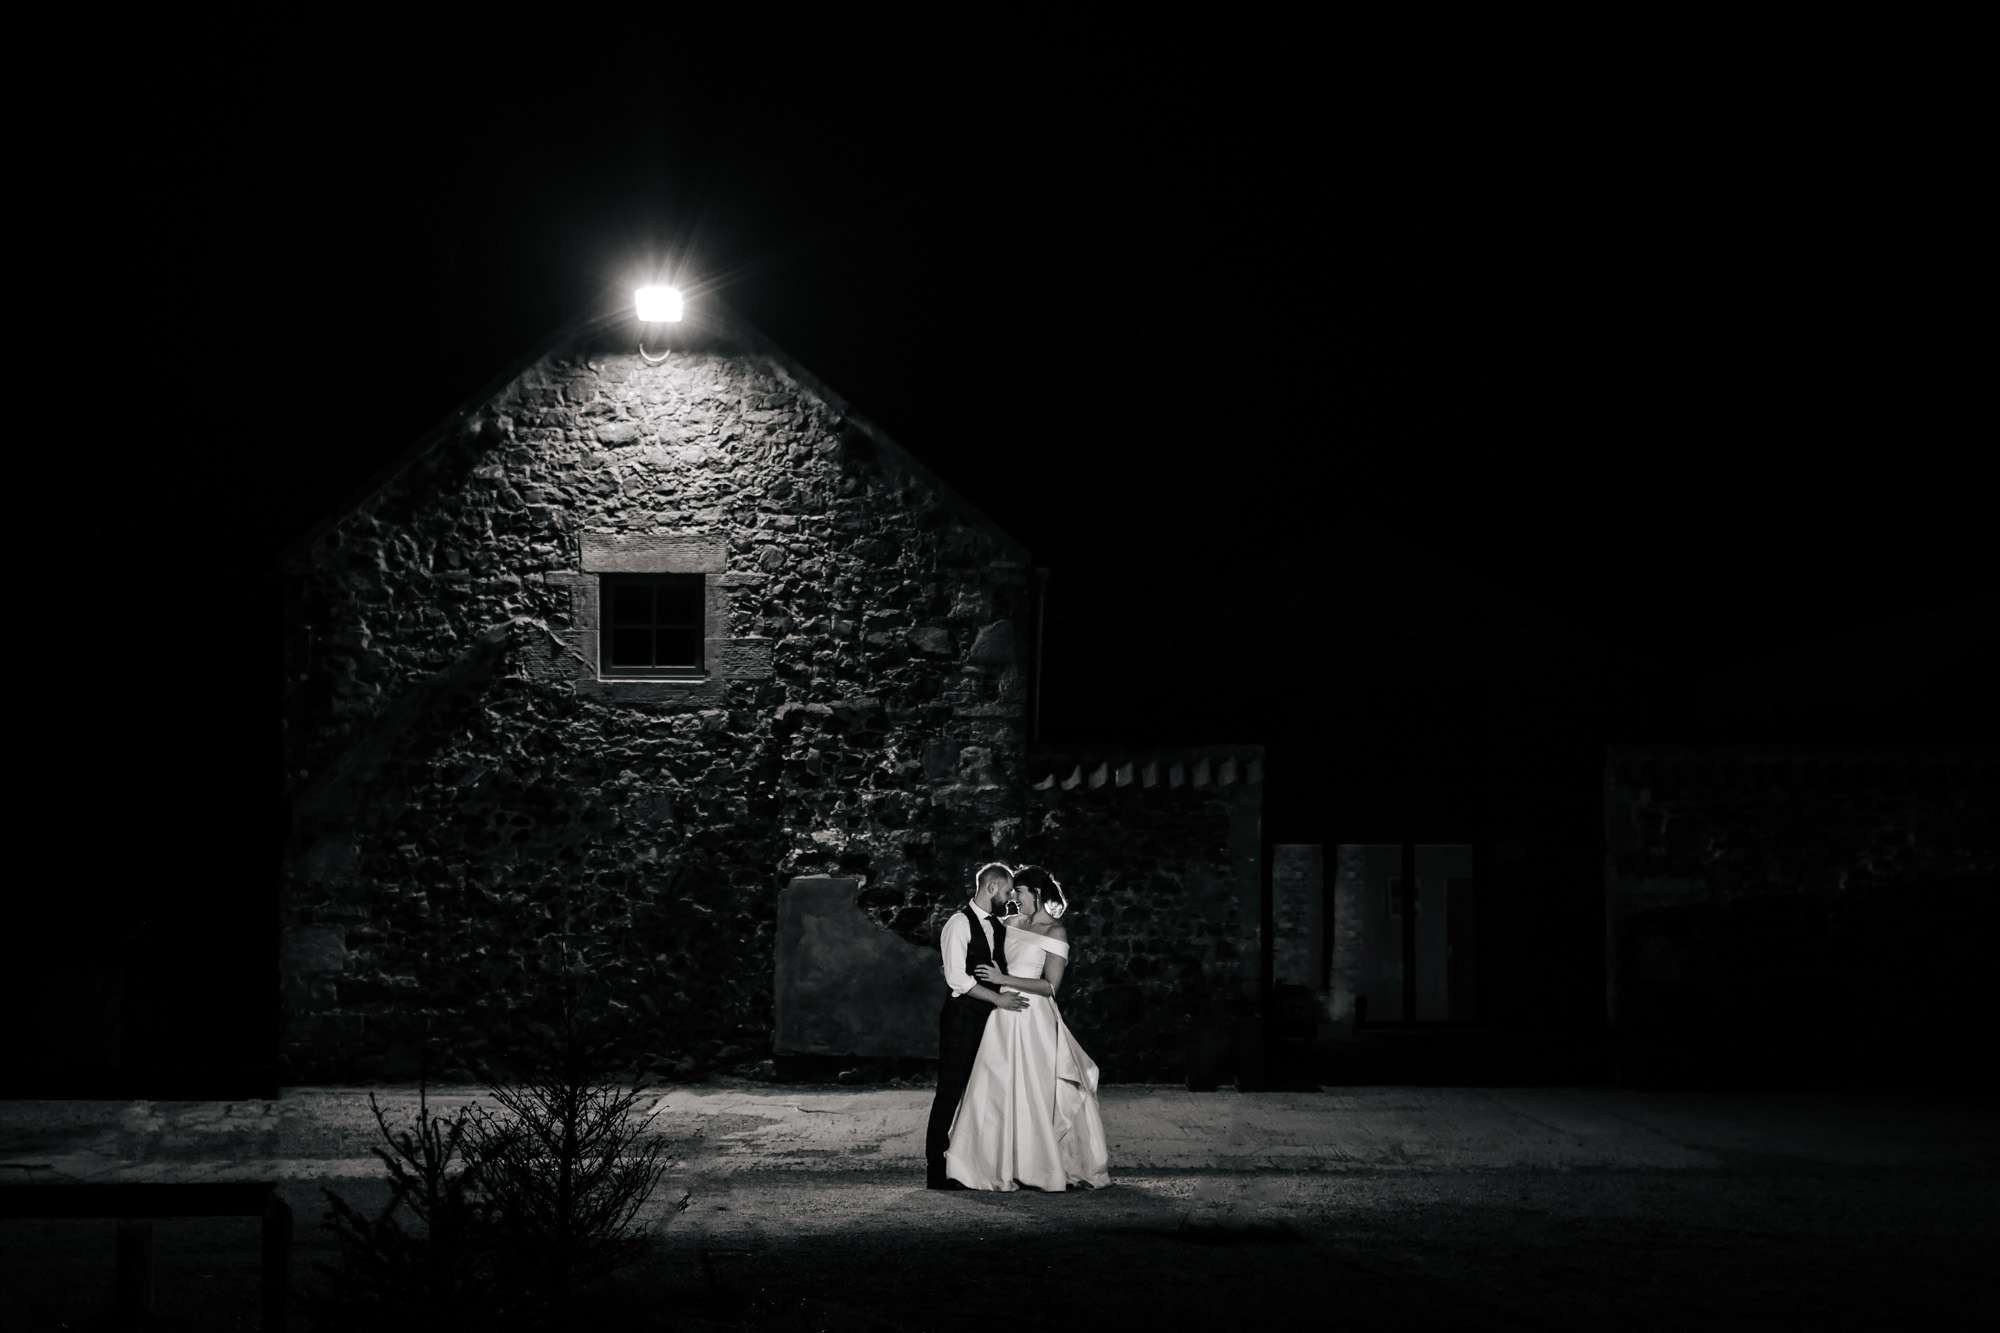 Bride and Groom in night portrait at a wedding